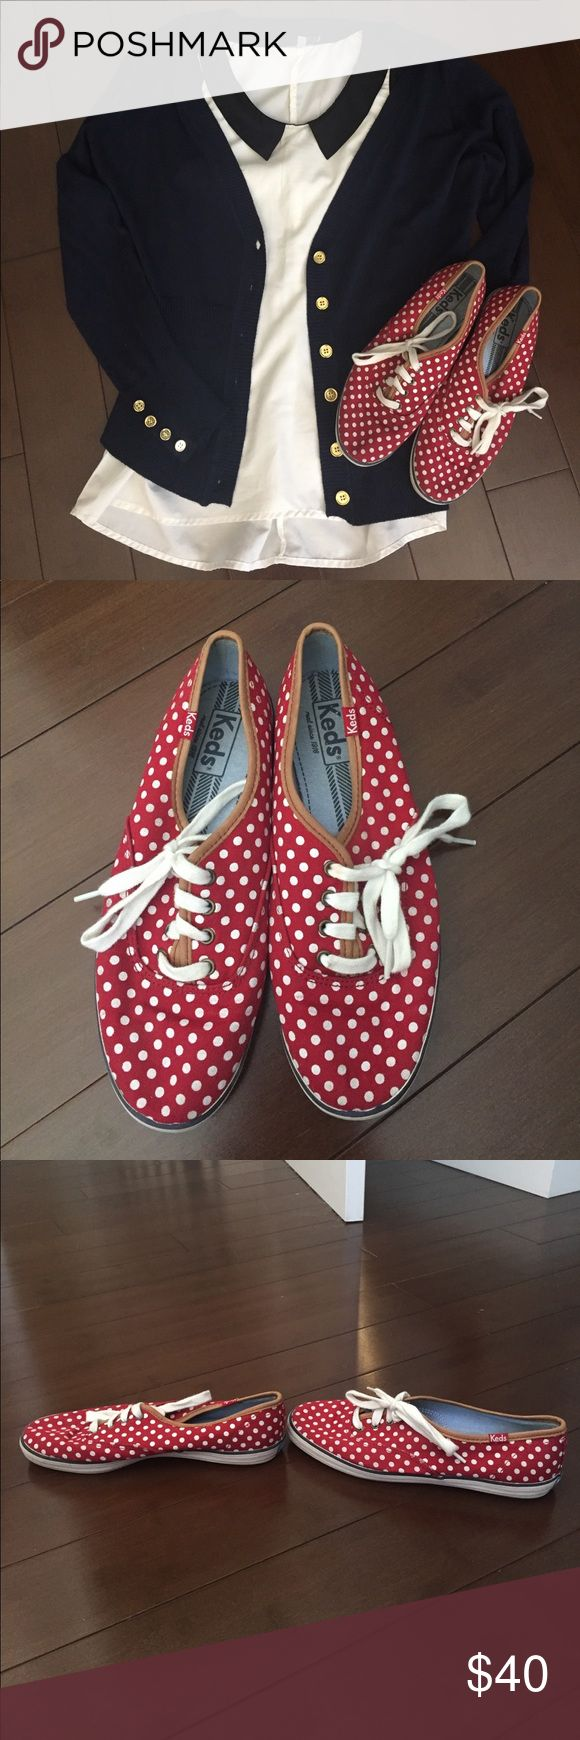 Red Polka Dot Taylor Swift Keds Champion Shoes Great condition on these Keds shoes! I actually have both this color and the blue polka dots version, I just found myself wearing the blue ones more often. Virtually no sign of wear on the top/sides/laces, and very minimal wear on the soles. Brown leather trim around the foot opening and by the laces. Soooo cute for 4th of July, Memorial Day, or just any old day! I usually wear a size 7 or 7.5, but these 6.5 fit me perfectly. Keds Shoes Sneakers